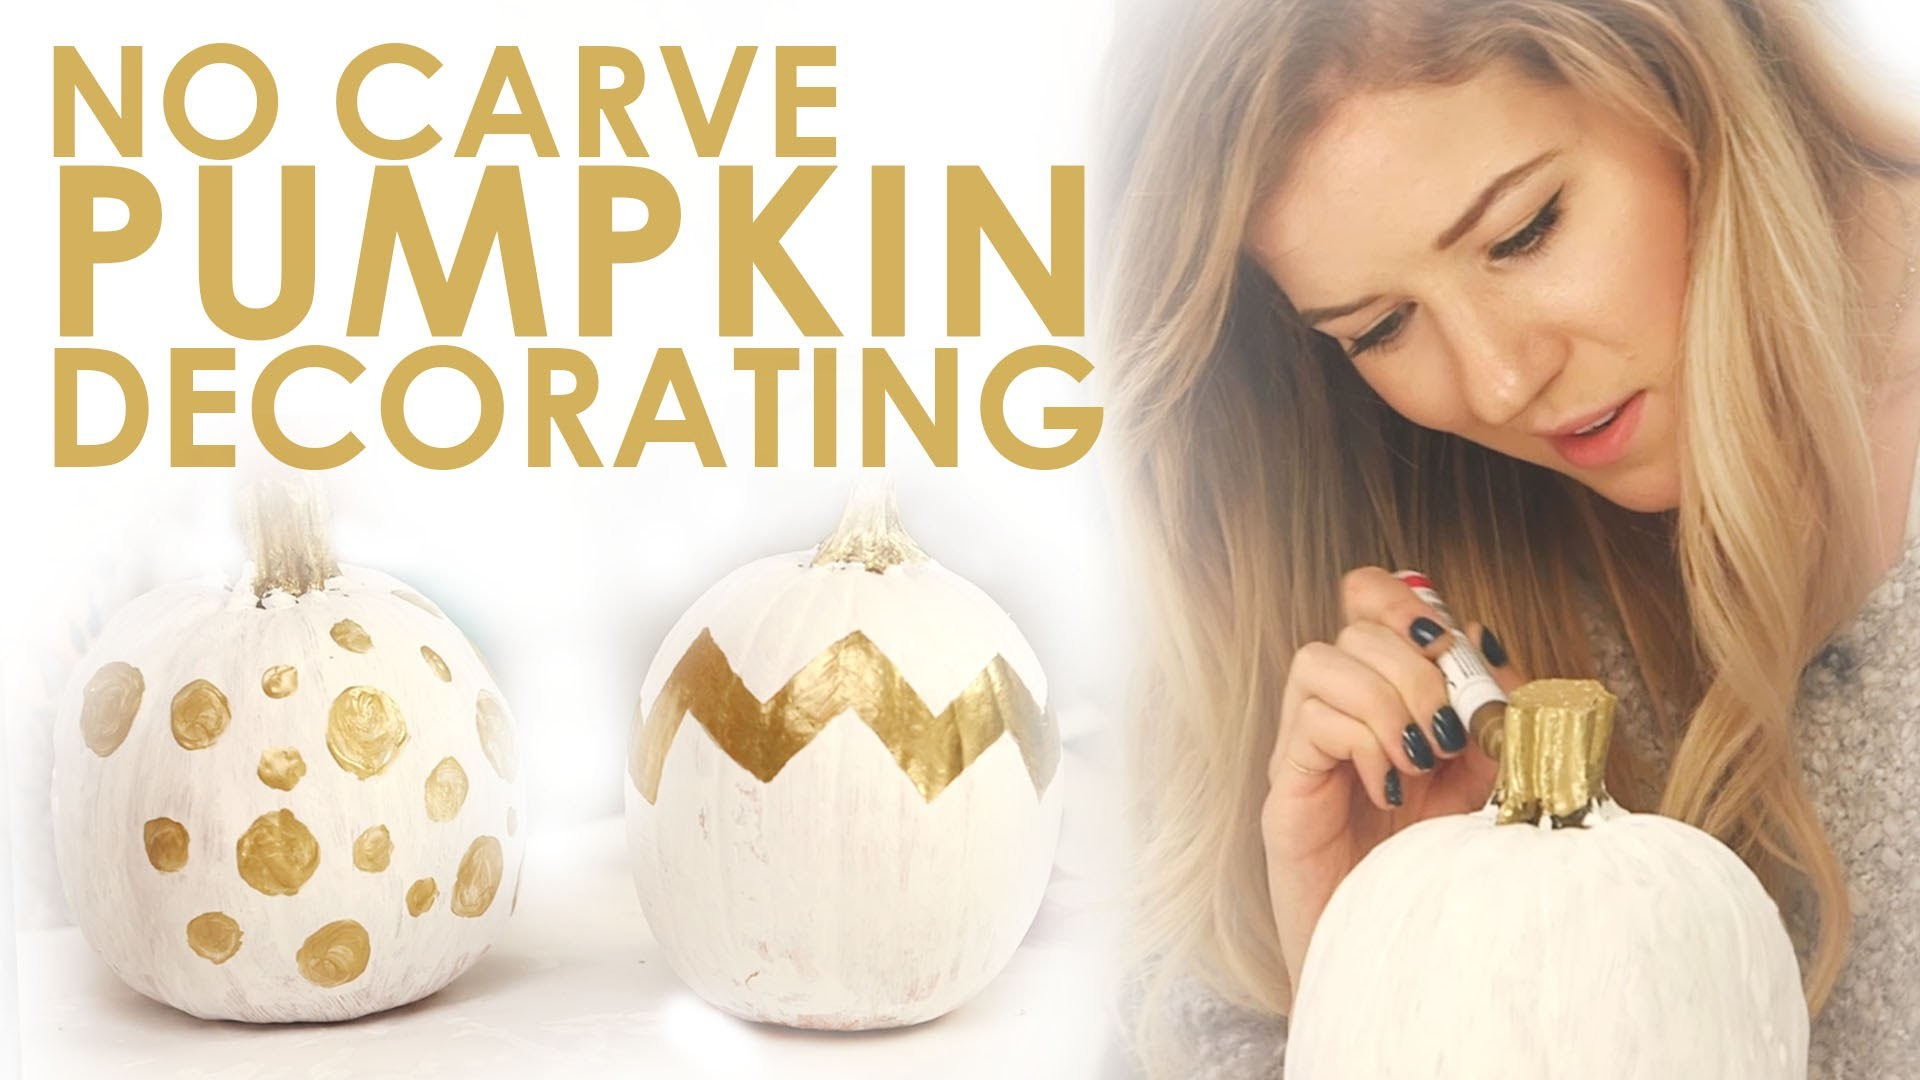 DIY No Carve Pumpkin Decorations for Fall!